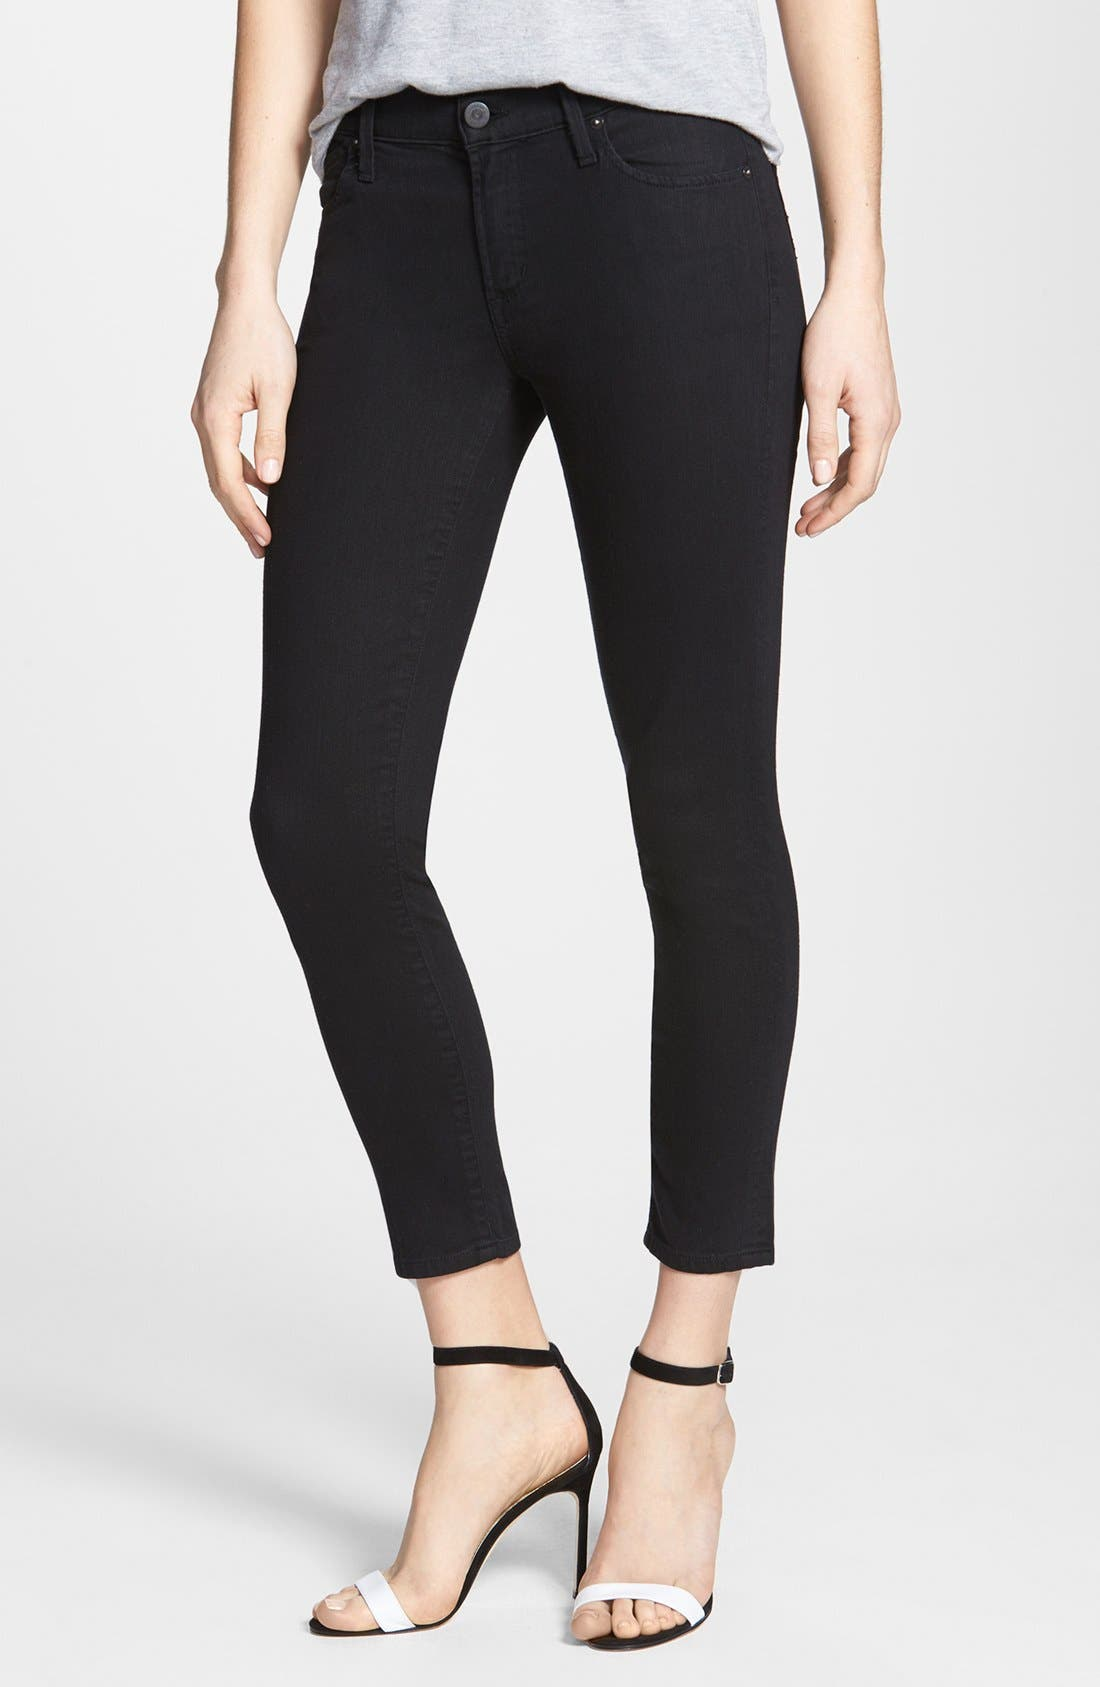 Alternate Image 1 Selected - Citizens of Humanity Skinny Crop Jeans (Black Diamond)